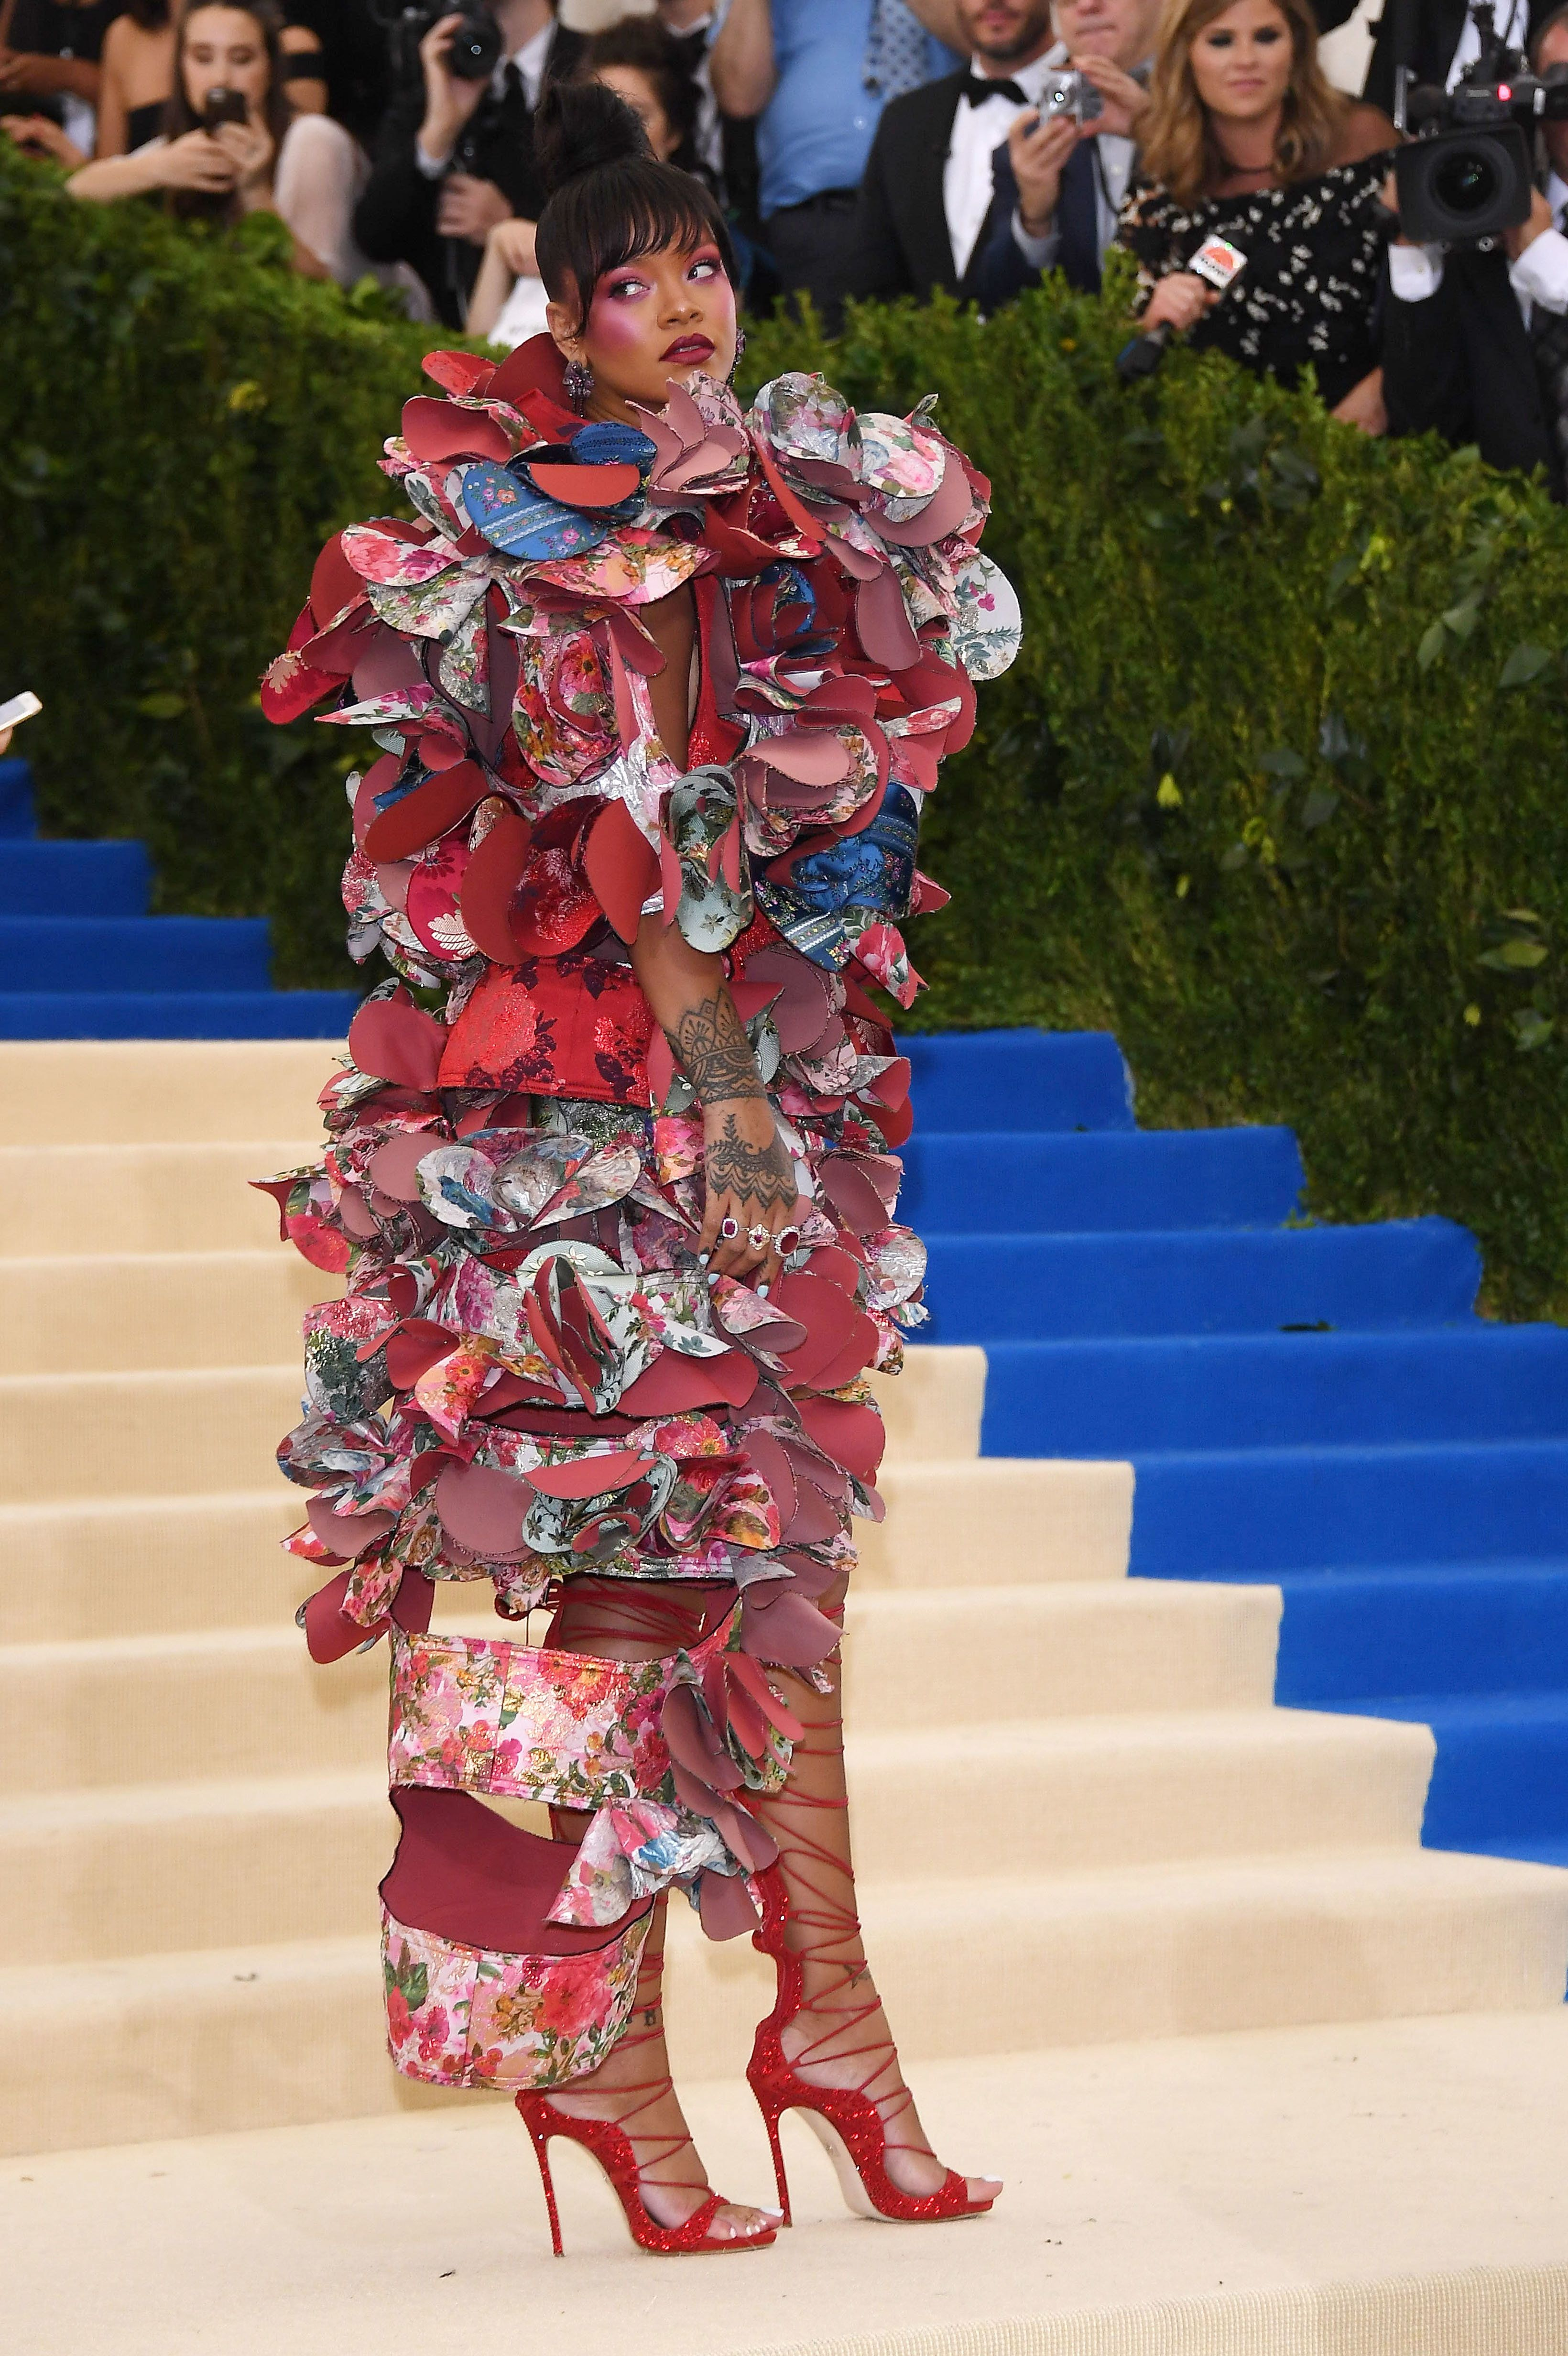 NEW YORK, NY - MAY 01:  Rihanna attends the Rei Kawakubo/Comme des Garcons: Art Of The In-Between Costume Institute Gala at Metropolitan Museum of Art on May 1, 2017 in New York City.  (Photo by Venturelli/WireImage)